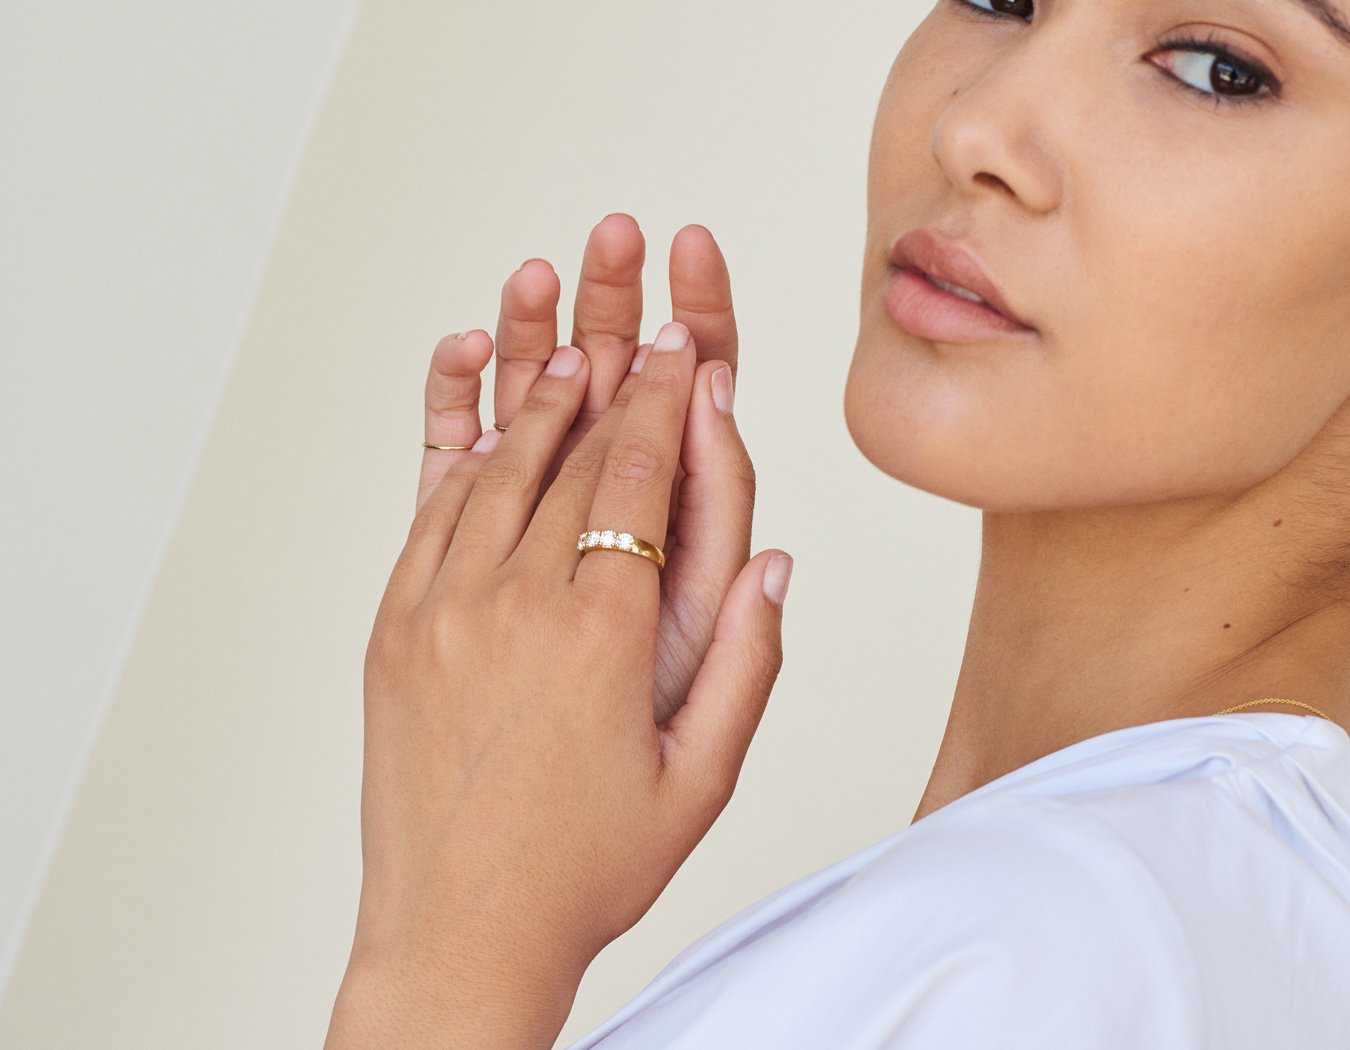 Woman modelling simple classic 14k yellow gold Round Tetrad Band diamond ring by Vrai & Oro minimalist jewelry